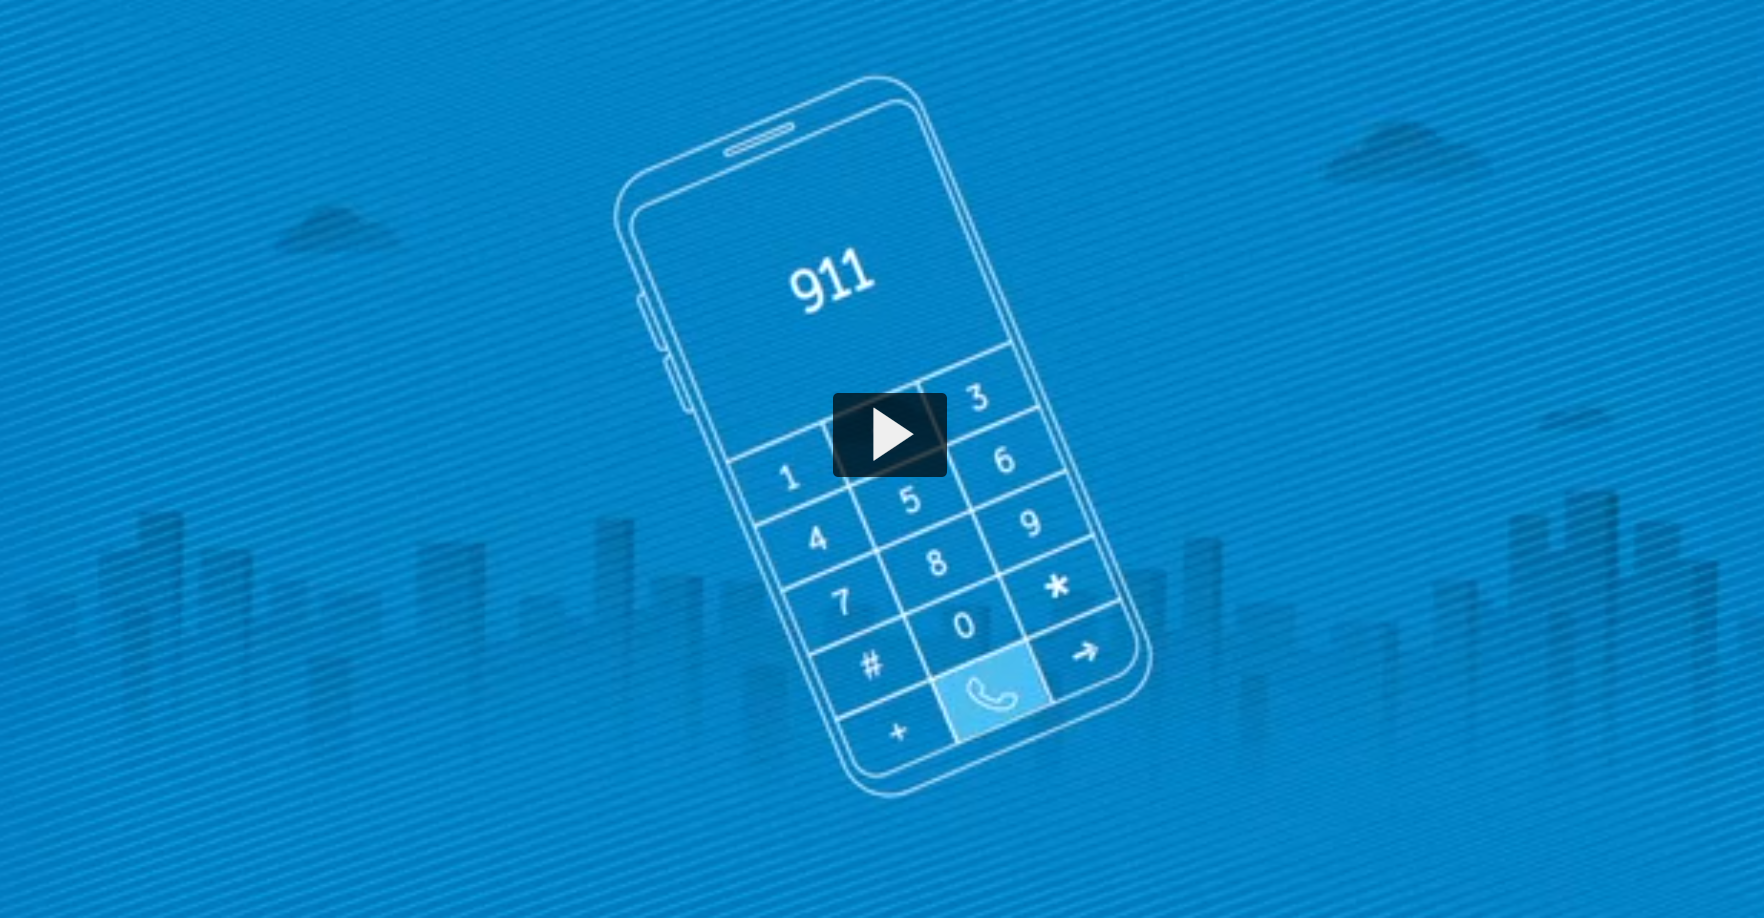 Screenshot of a video with a blue background and illustrated smartphone. Text on the smartphone reads 9-1-1.